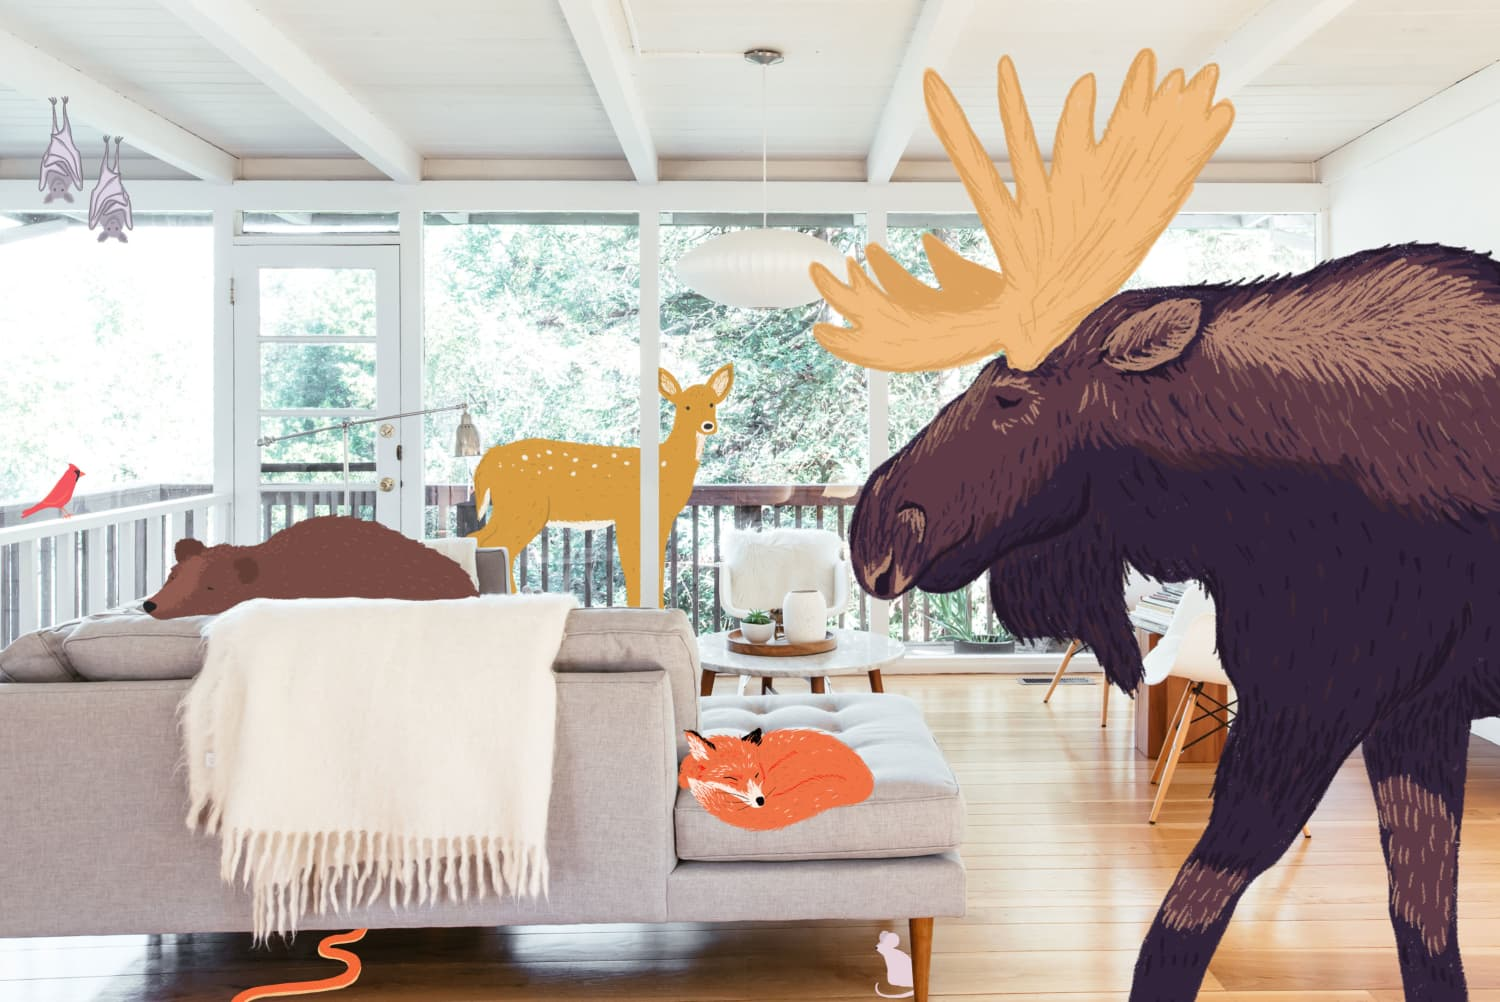 Bring Virtual Animals into Your Home With This Google Feature